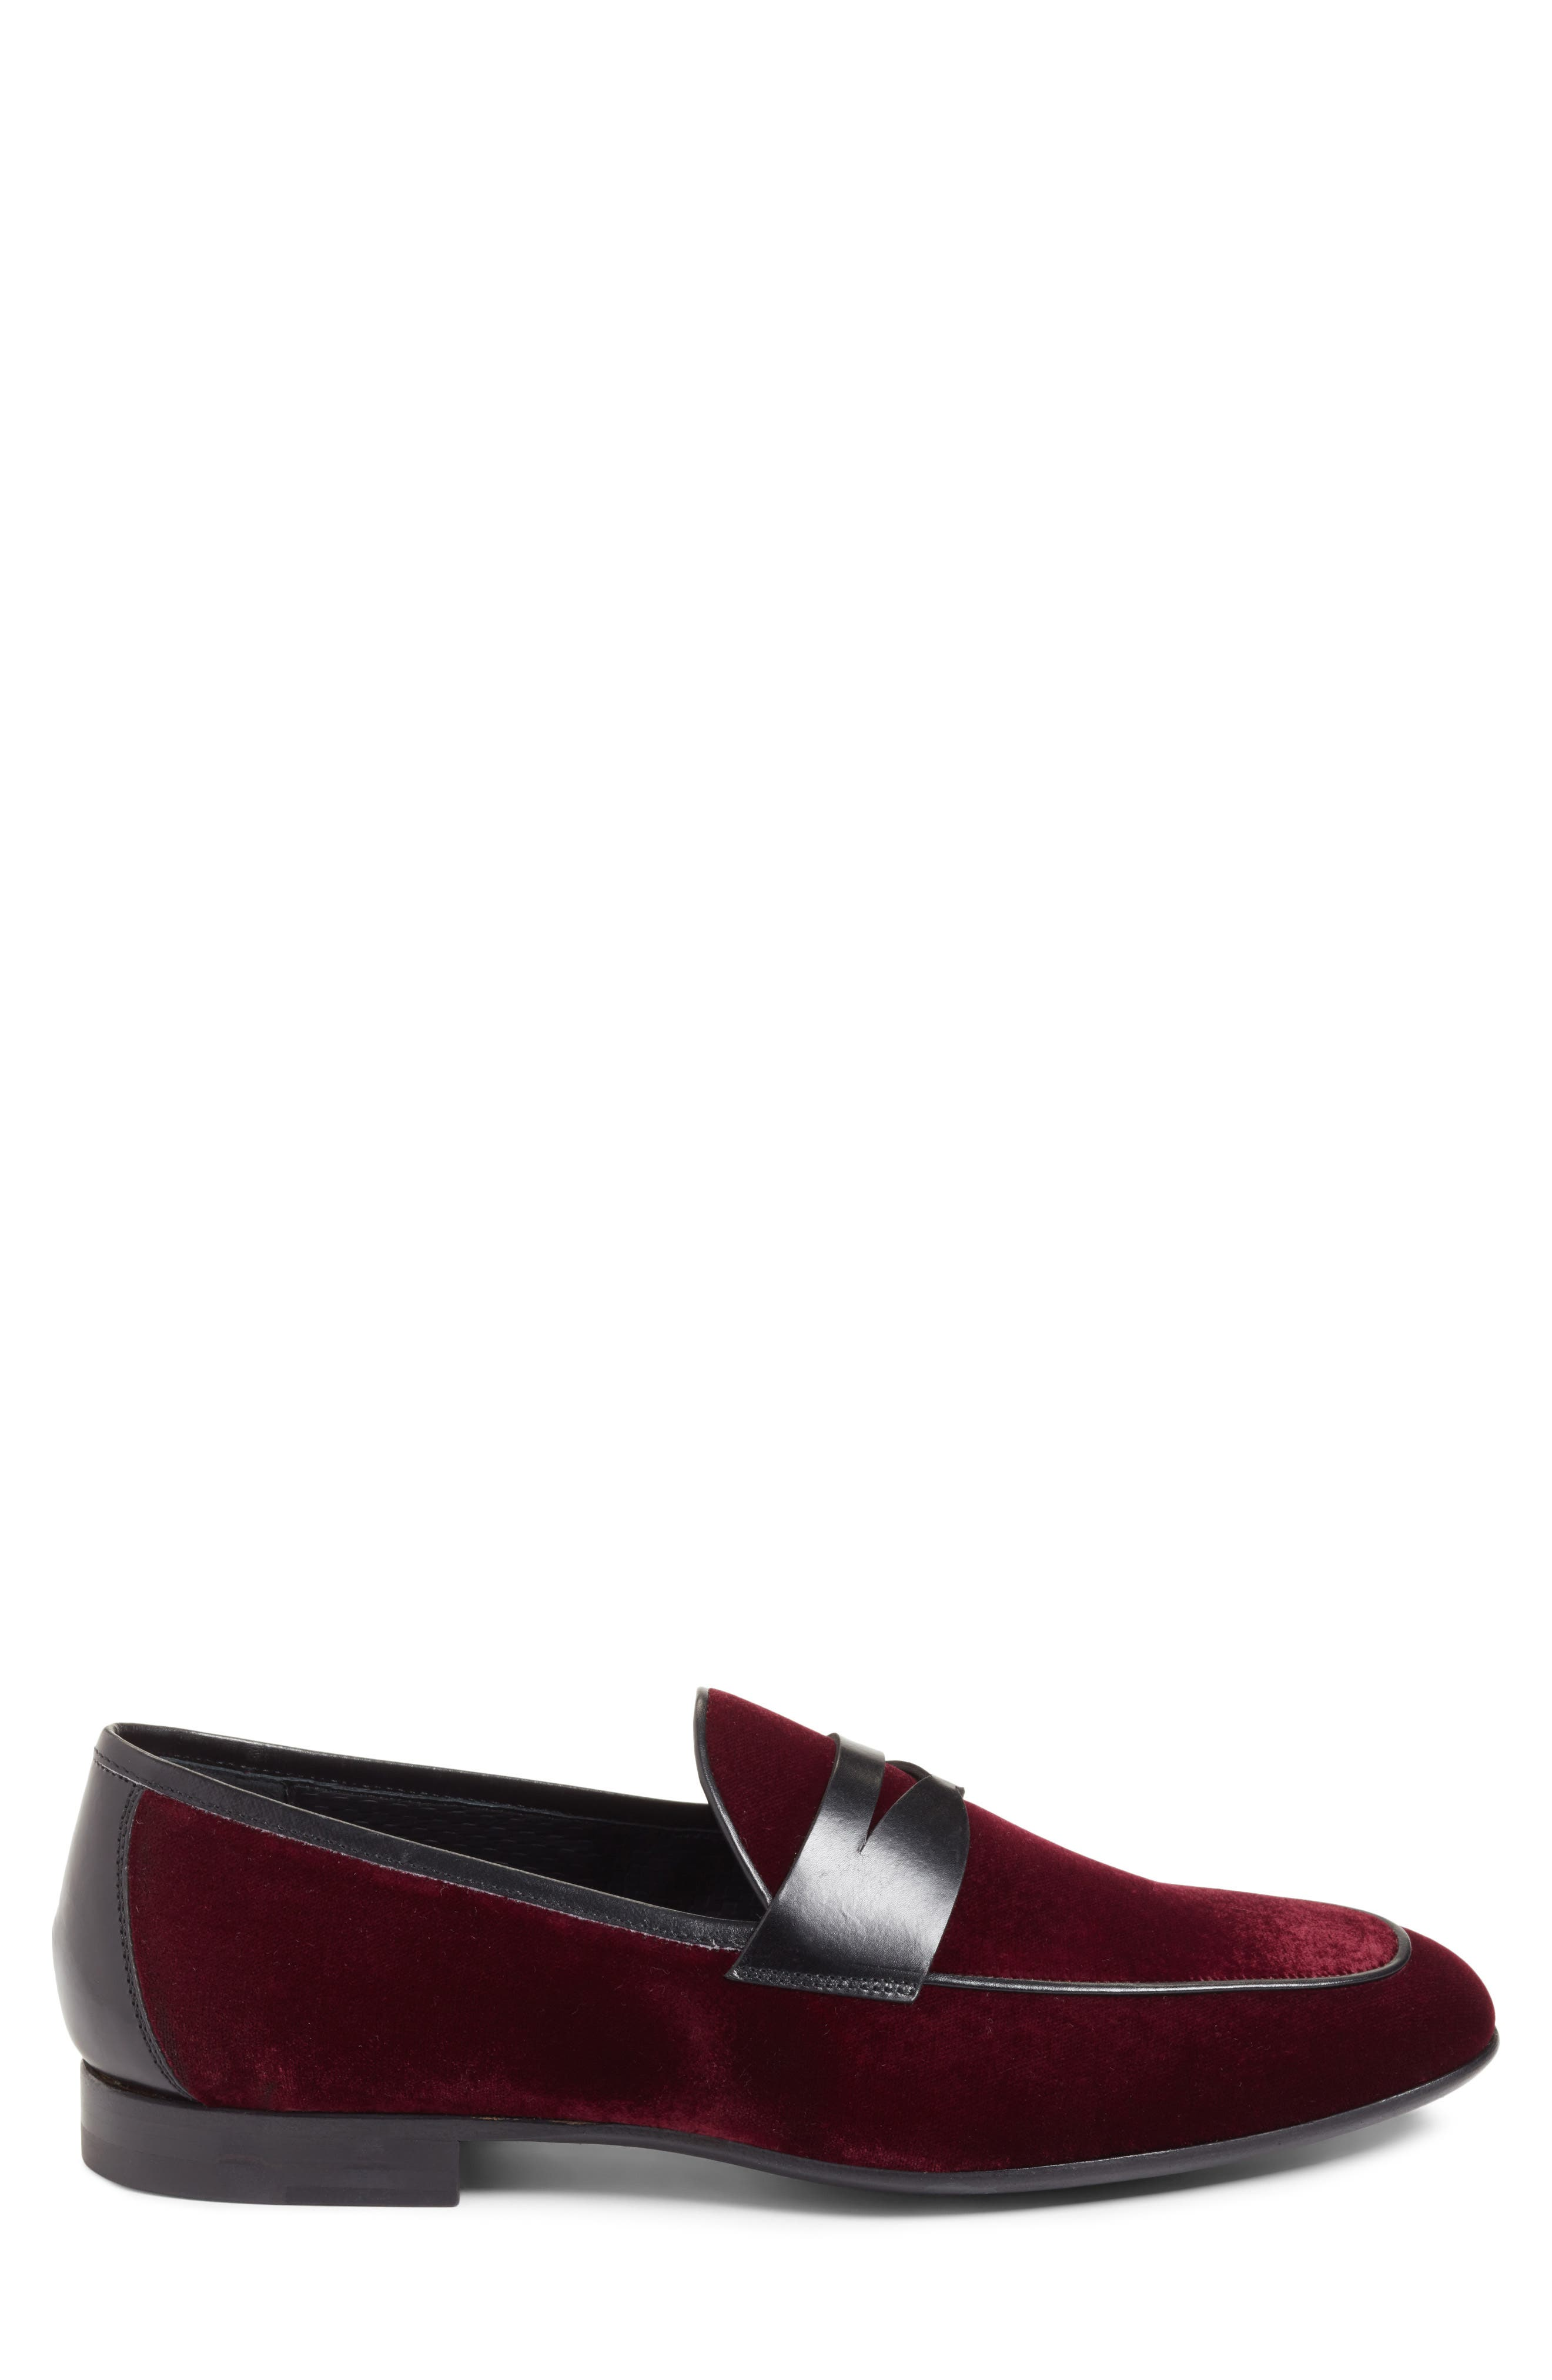 Dorado Penny Loafer,                             Alternate thumbnail 3, color,                             BURGUNDY